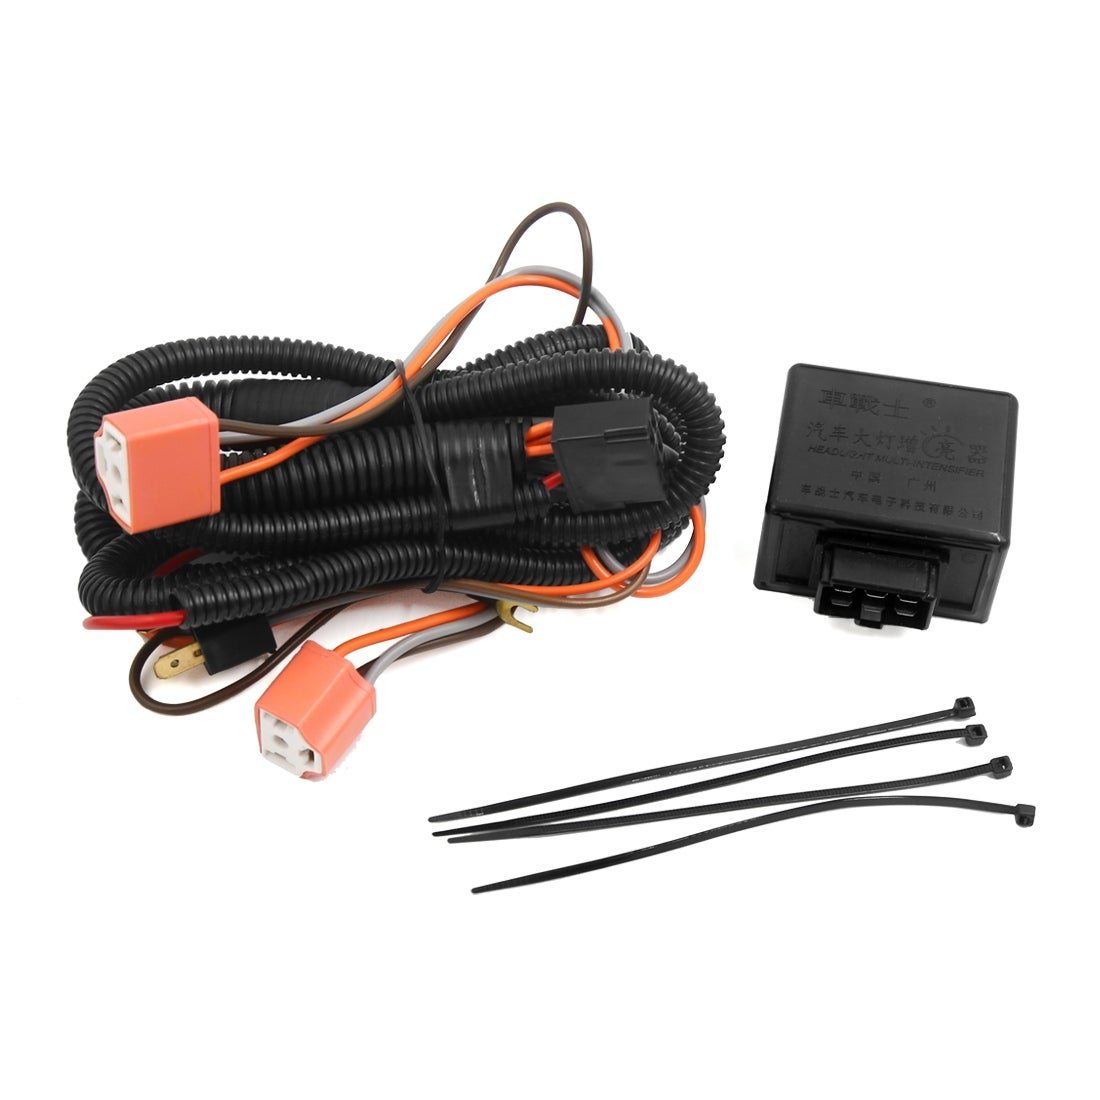 Shop H4 Hid Headlight Fog Bulb Female Plug Relay Harness Wire Controller Wiring Kit For Car On Sale Free Shipping Orders Over 45 17609484